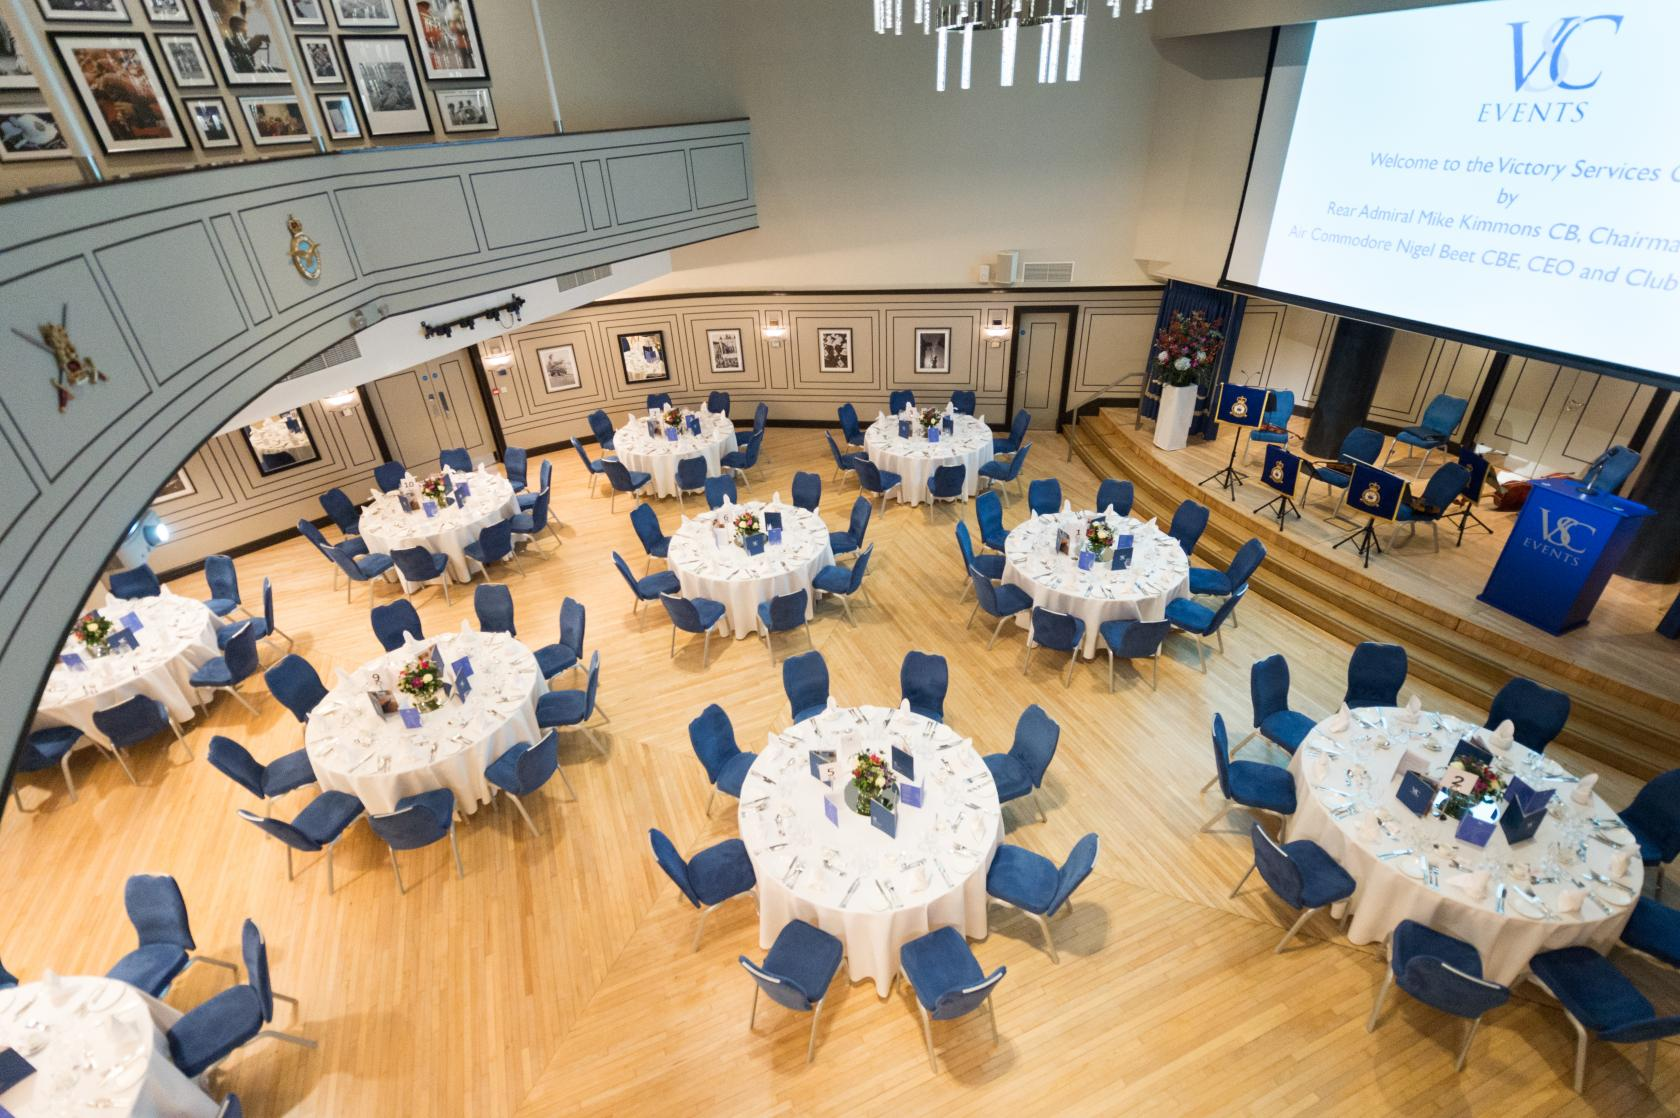 The Carisbrooke Hall Victory Services Club Event Venue